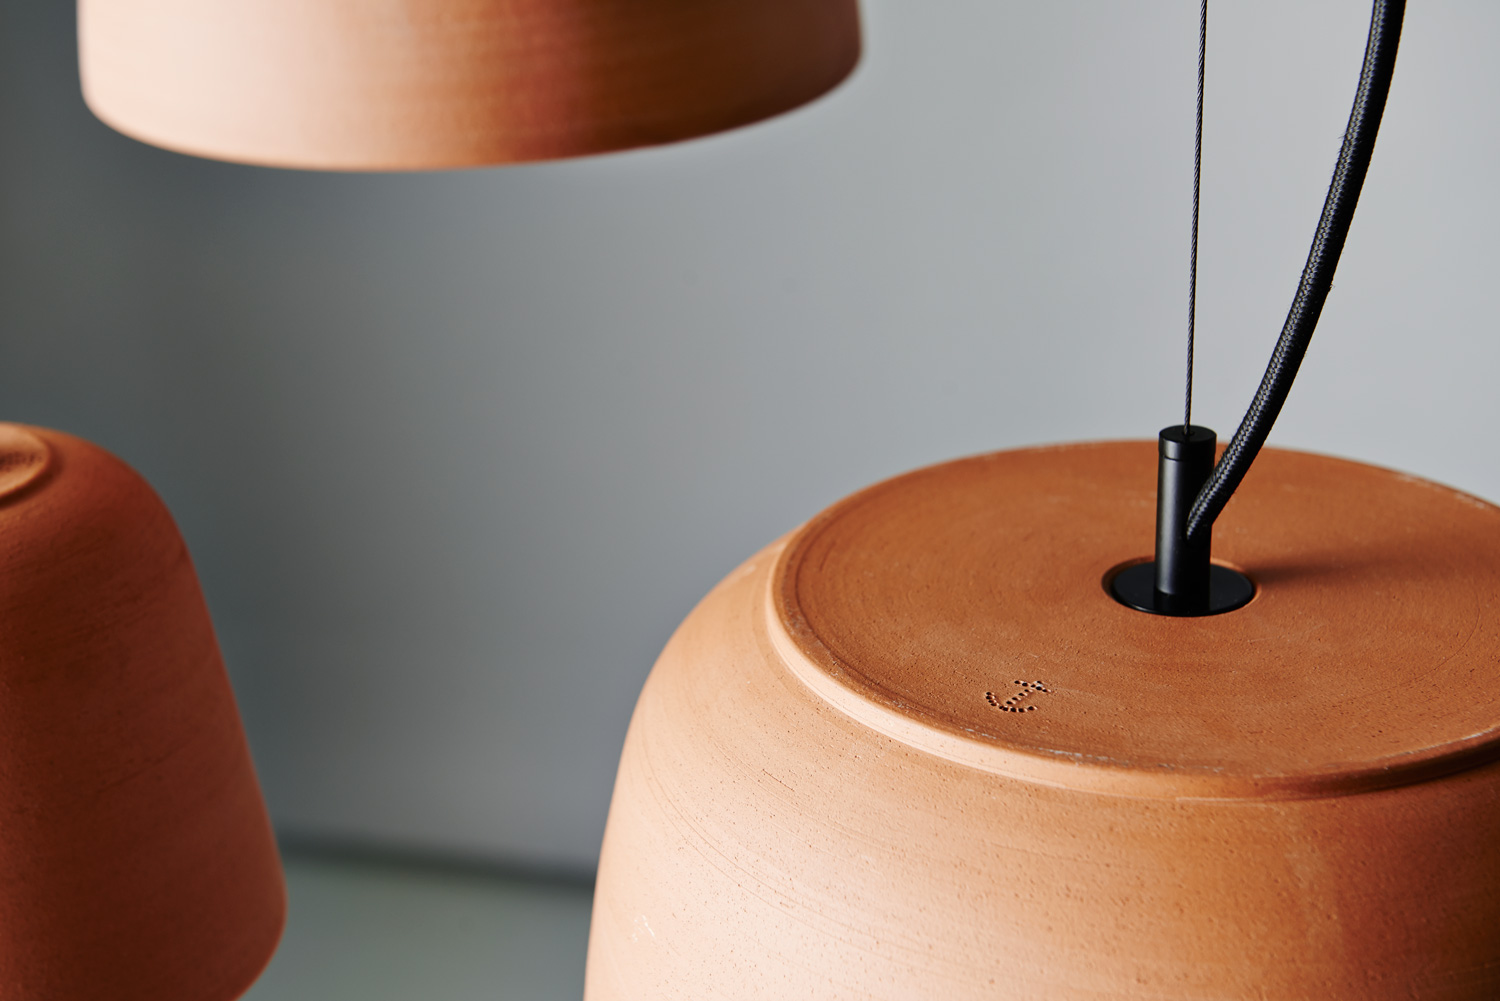 Potter Light by Bruce Rowe from Anchor Ceramics   Yellowtrace